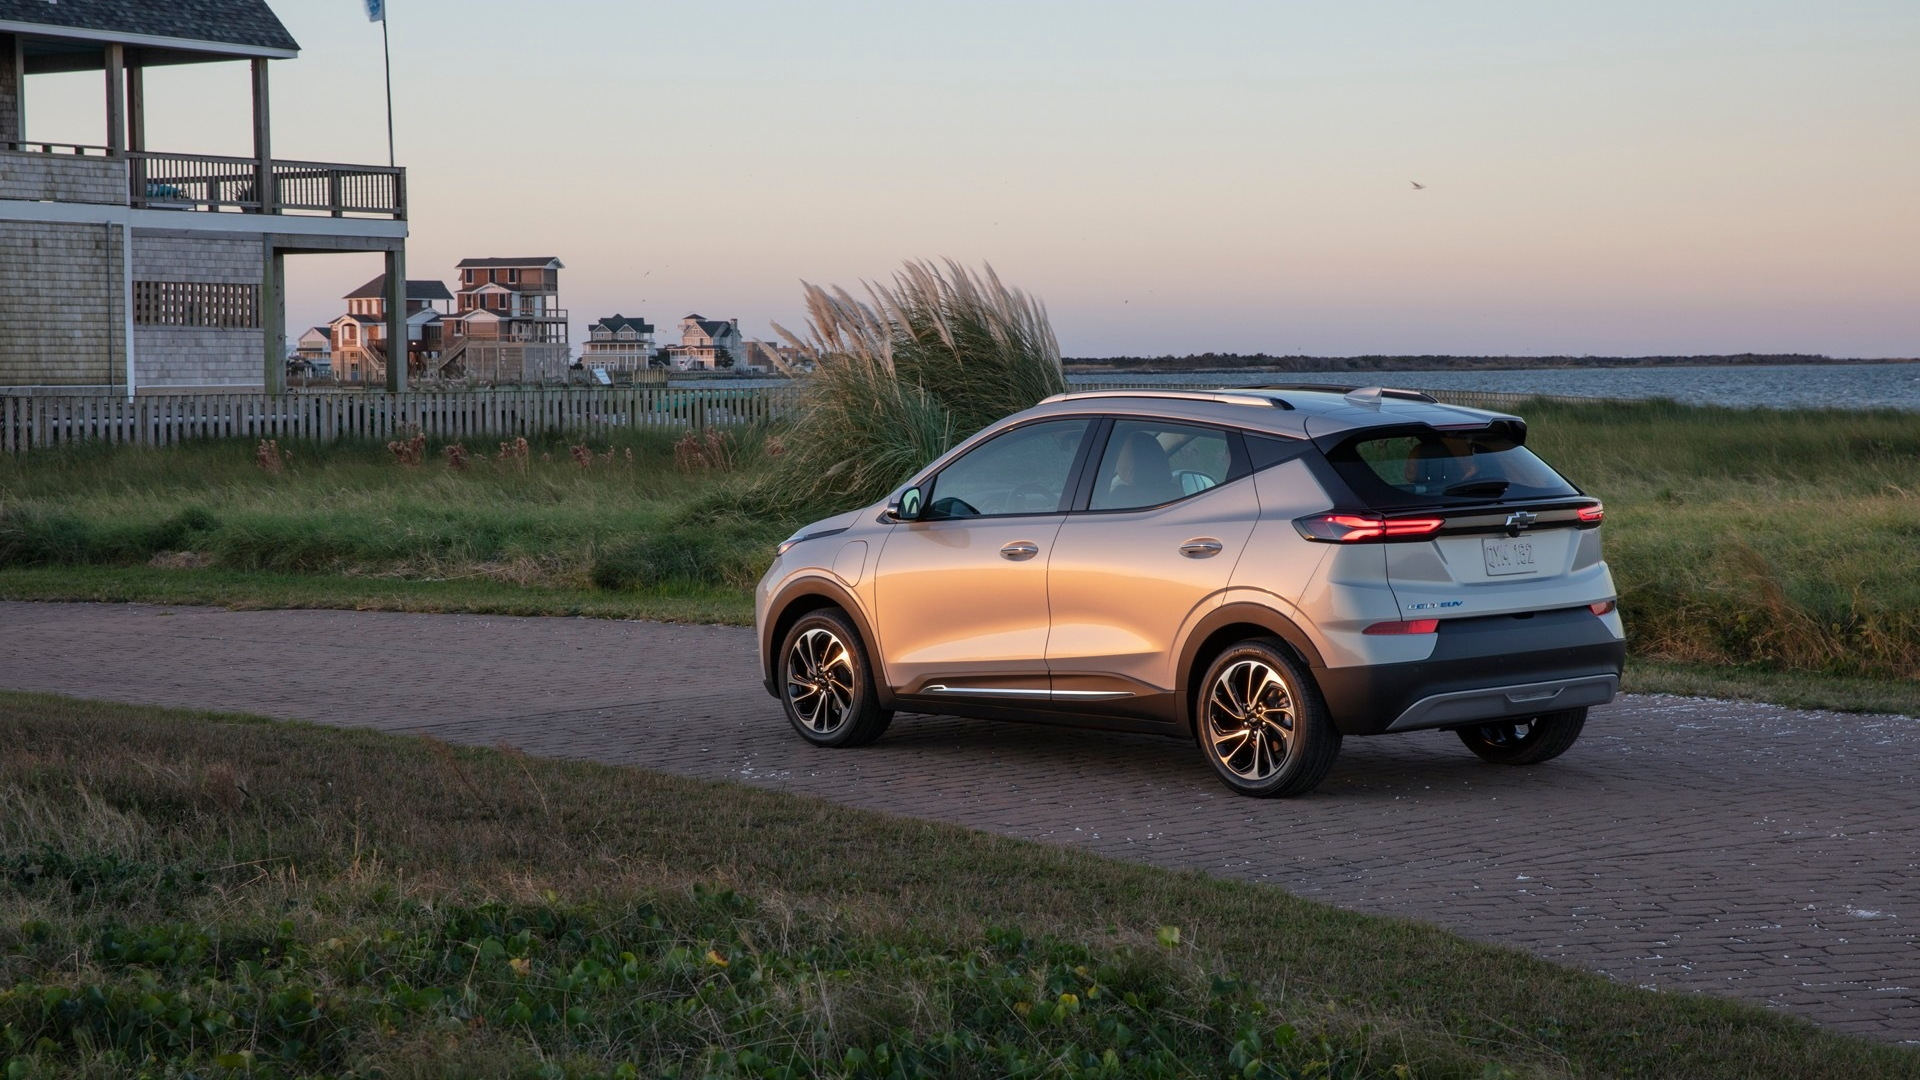 2022 Chevrolet Bolt EUV